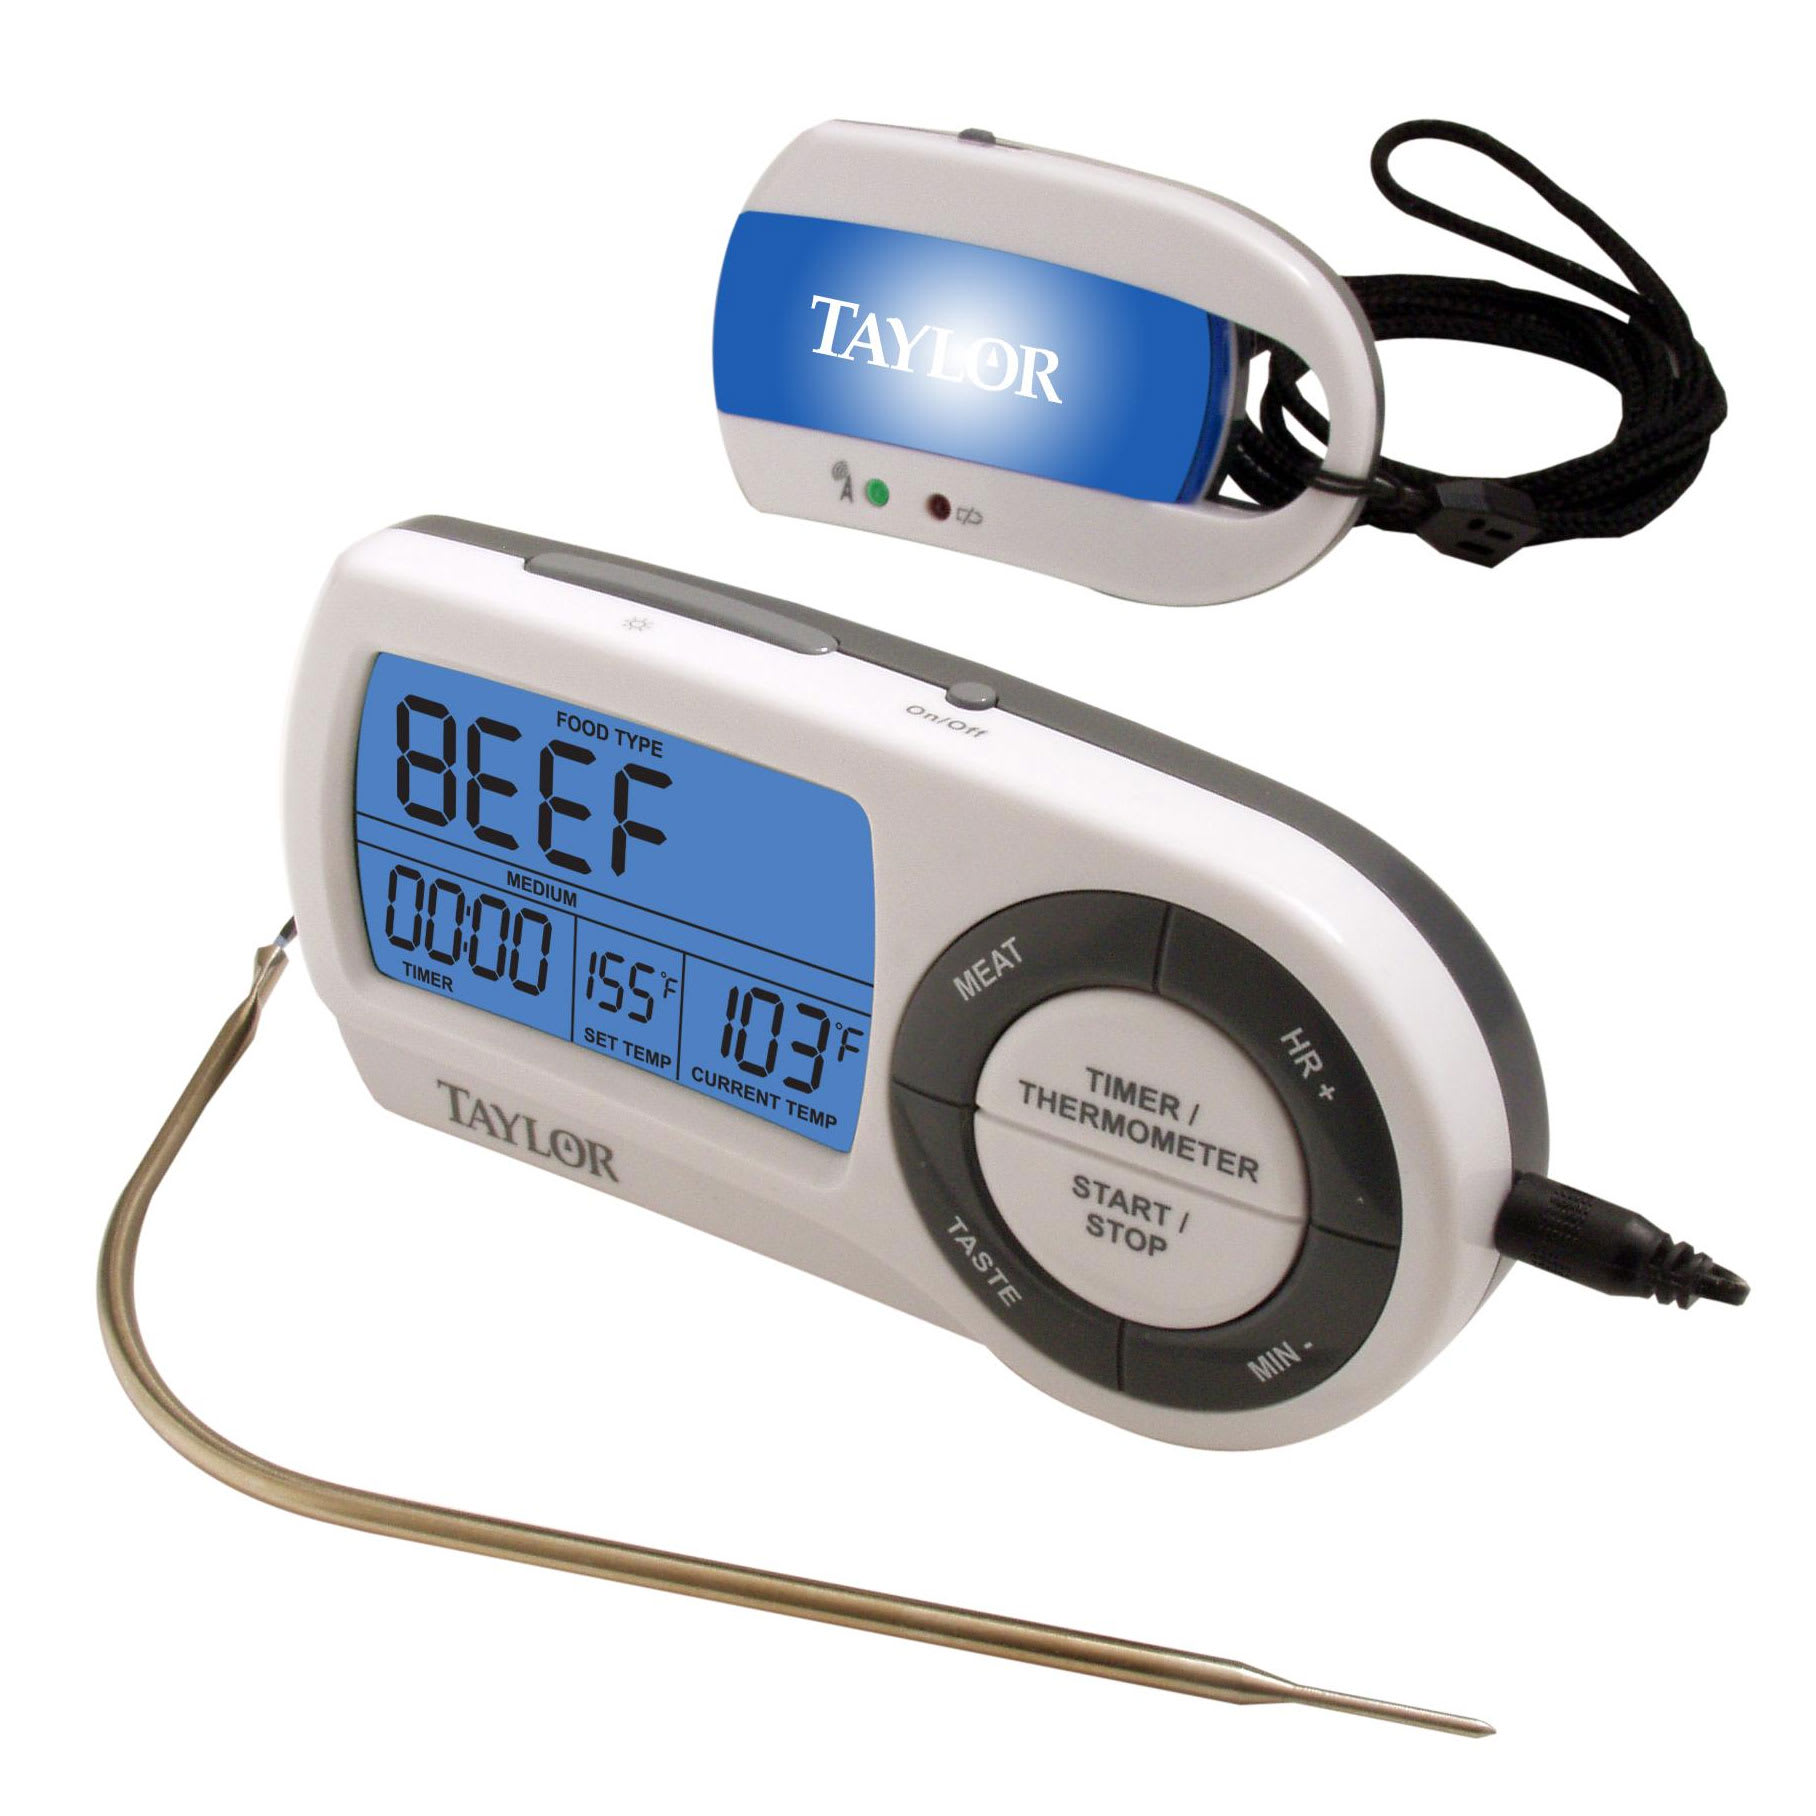 Taylor 1479-21 Wireless Digital Thermometer w/ Timer, 32 to 450 Degrees